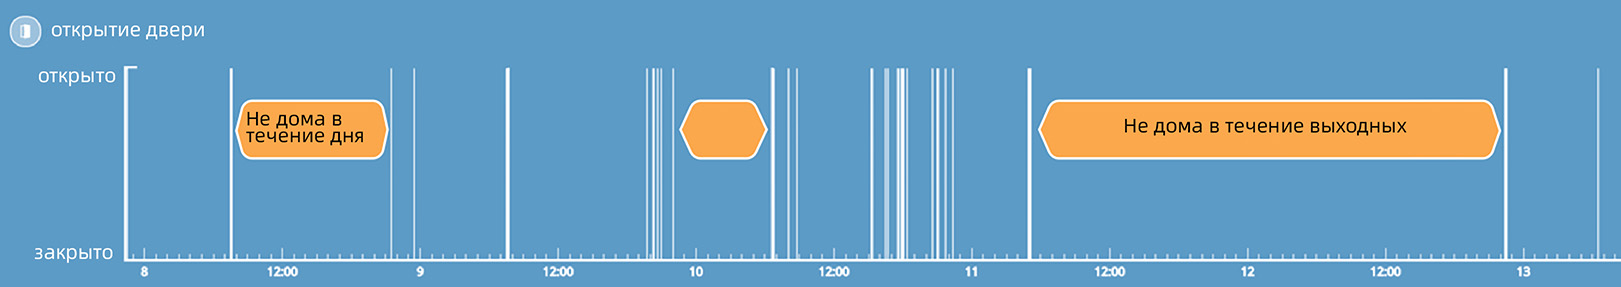 Weekly log chart of a door sensor shows when someone is not at home